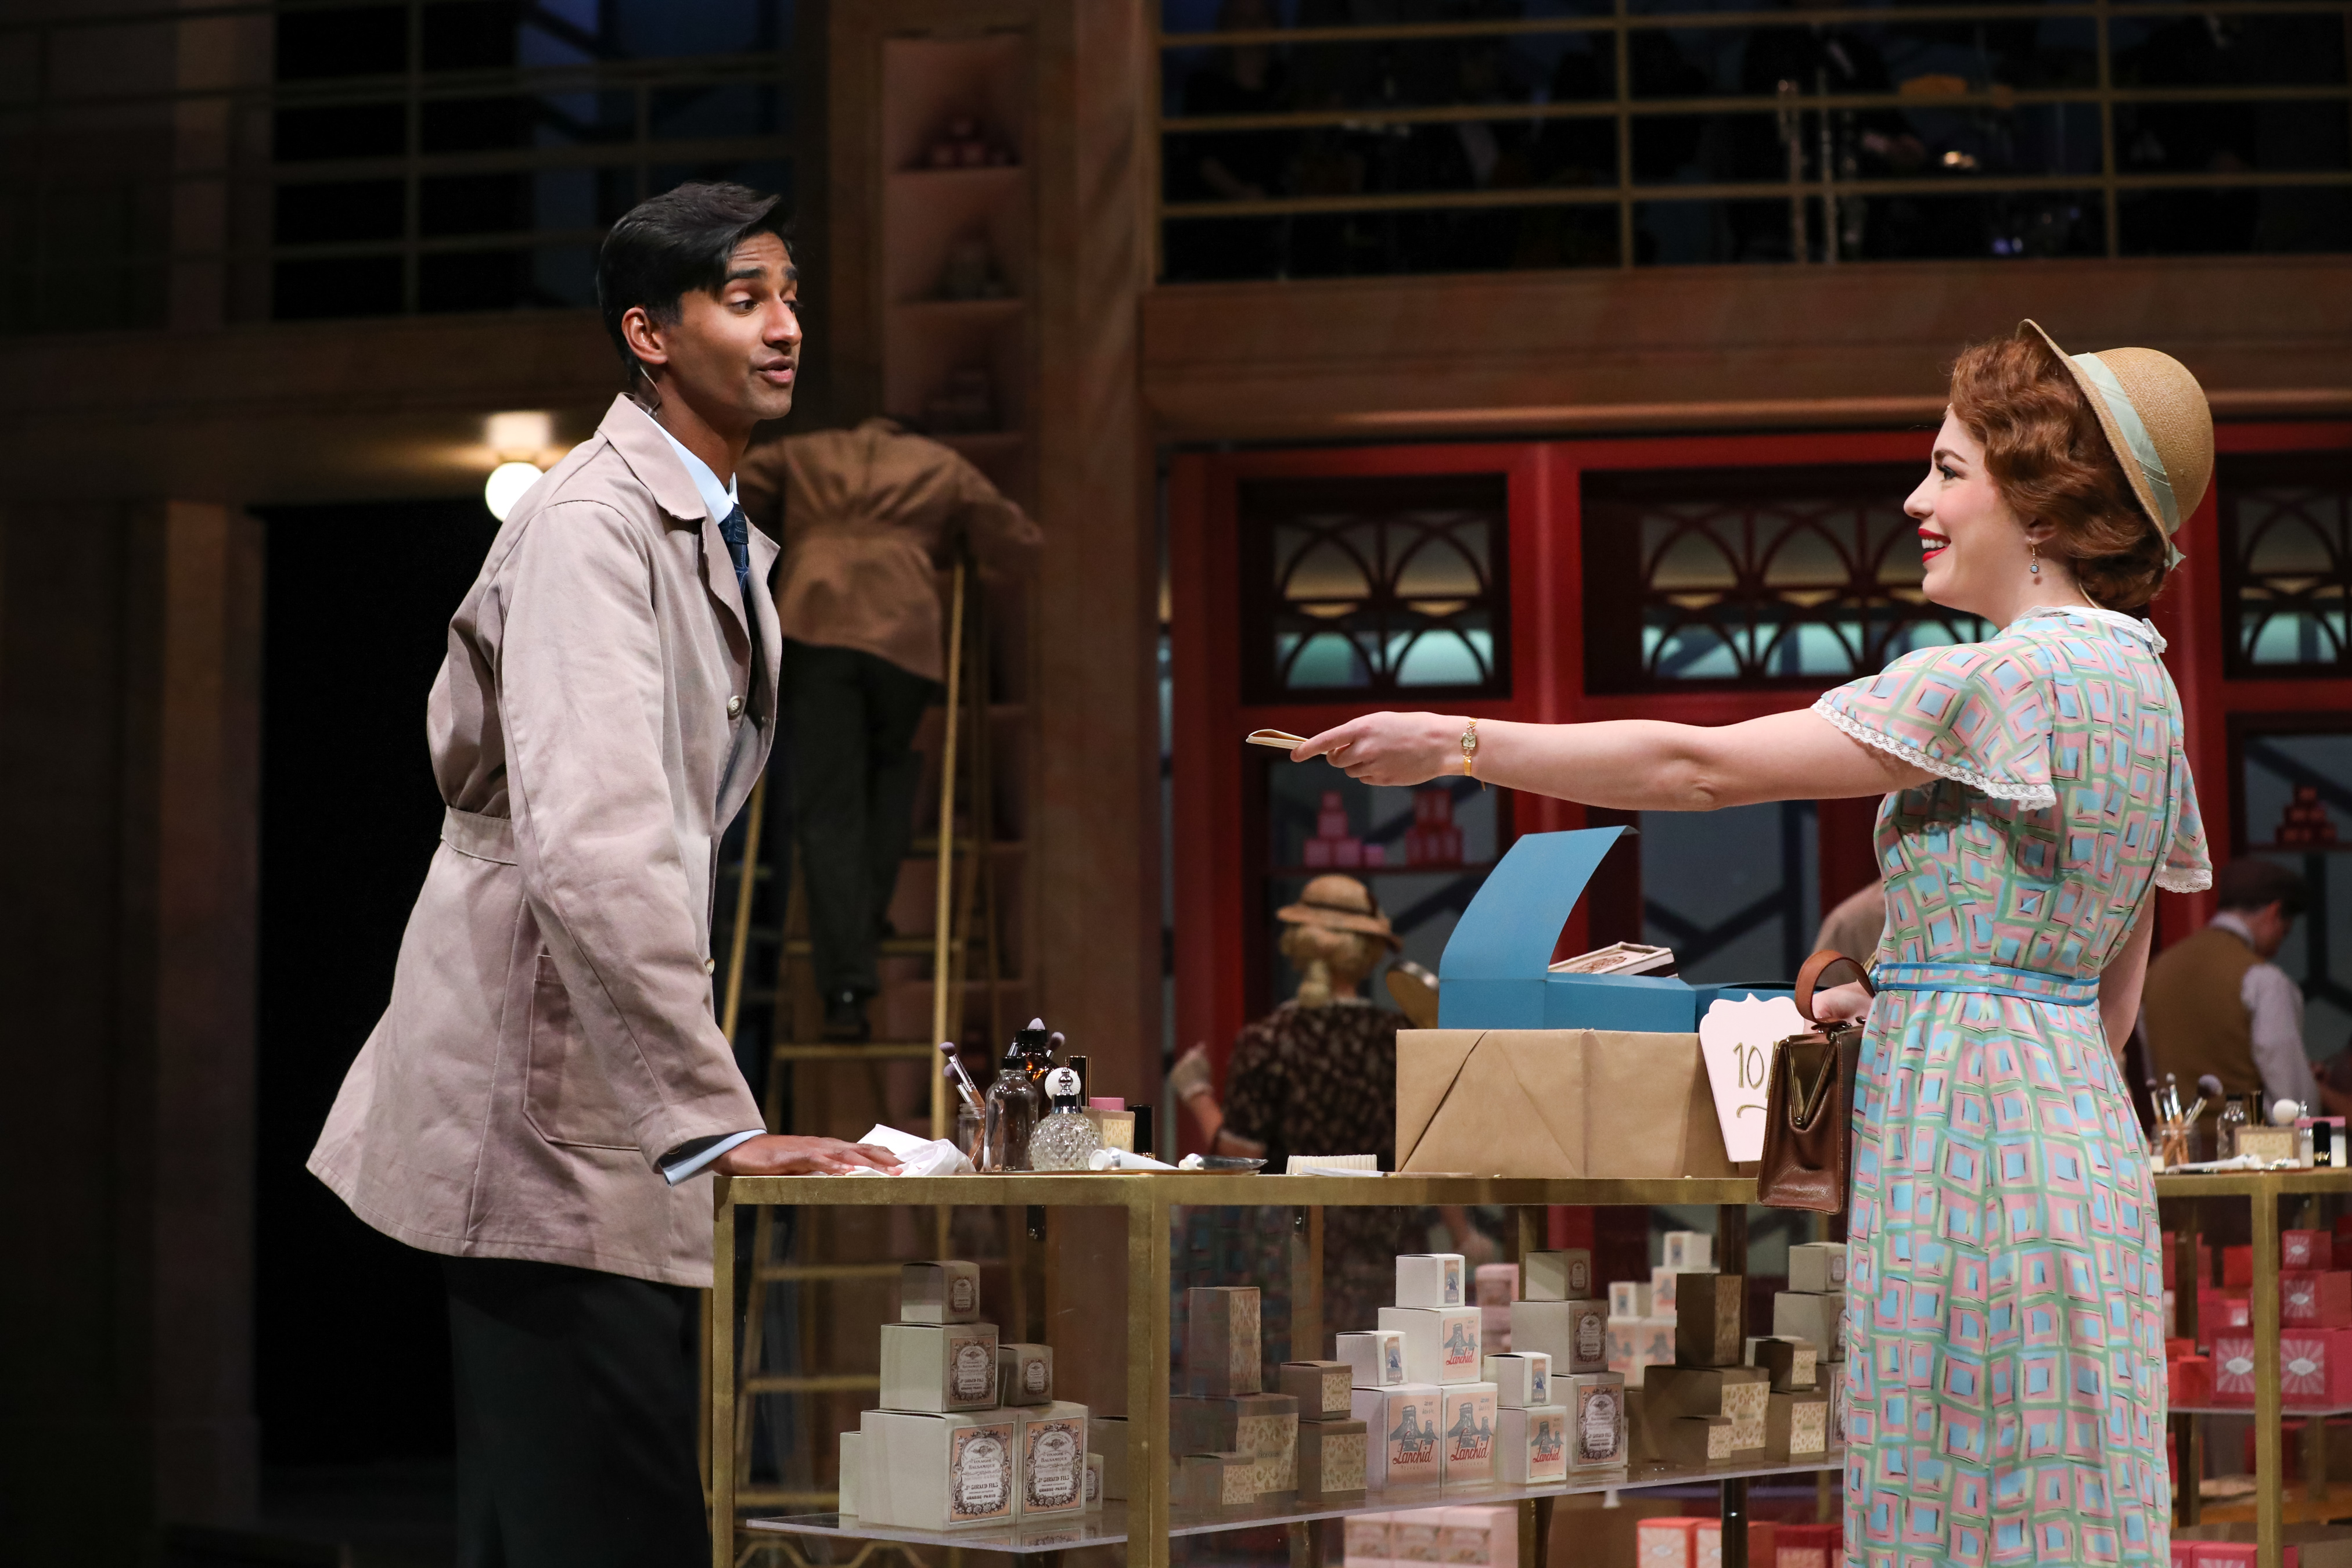 Michael Maliakel as Georg and Jenny Latimer as Amalia in PlayMakers Repertory company's production of SHE LOVE ME. Directed by Kirsten Sanderson. Costume design by Bobbi Owen.